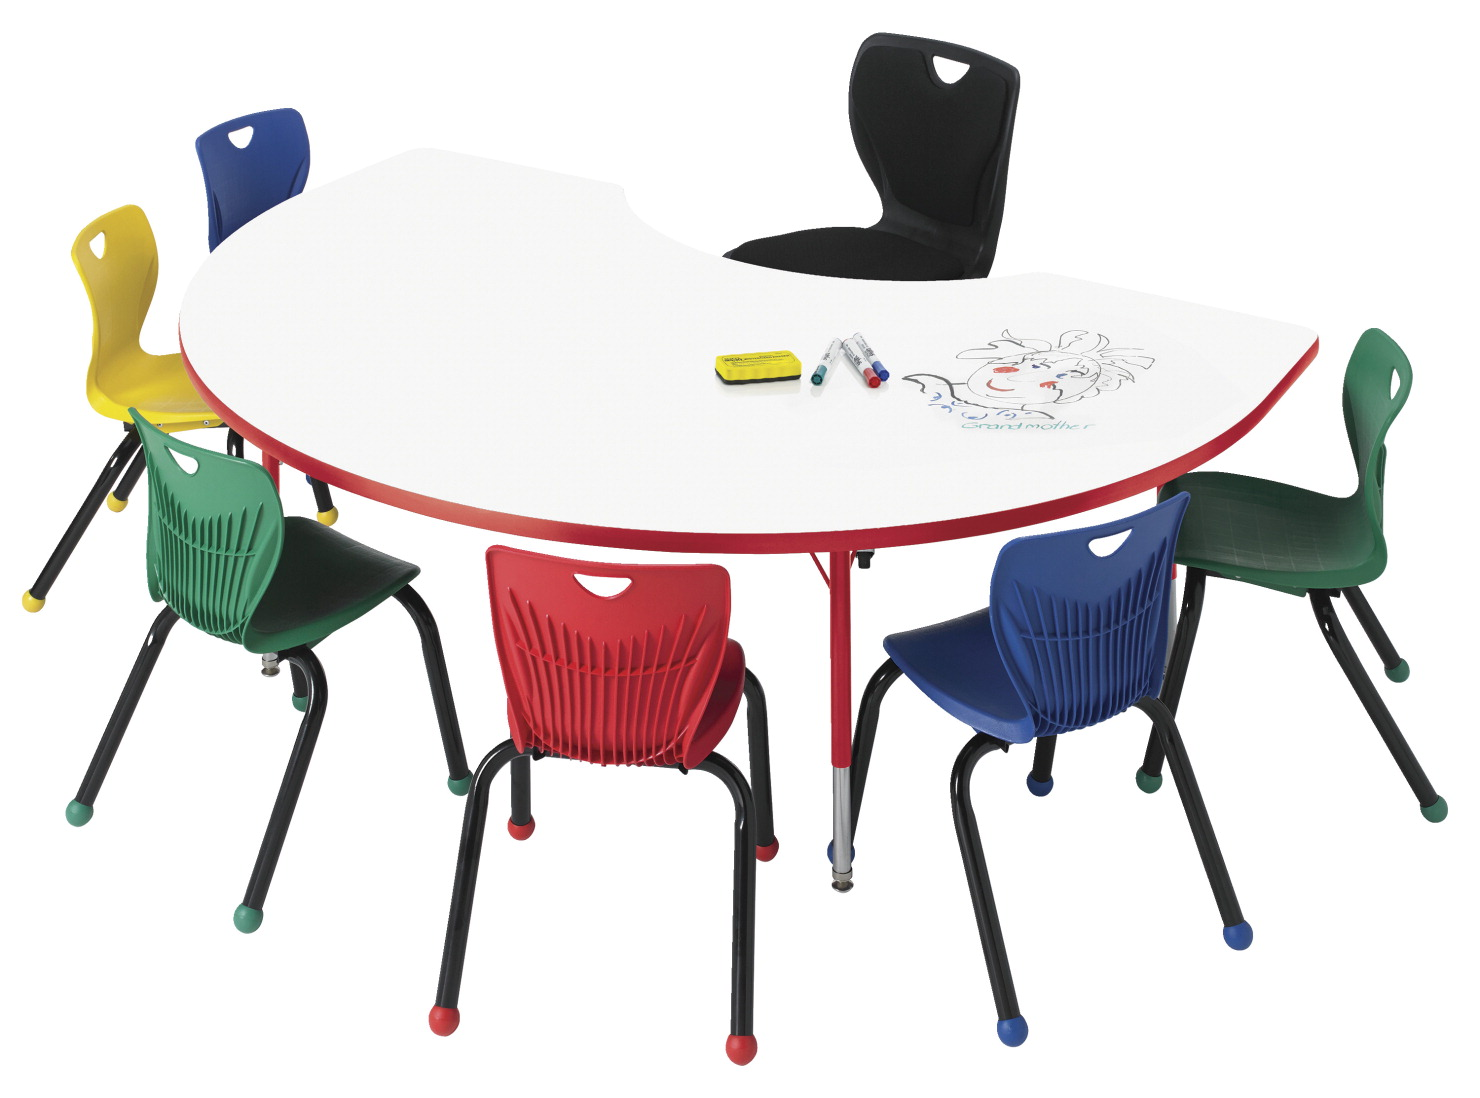 Classroom Select Markerboard Activity Table, Kidney, 72 x 48 Inches, Various Options